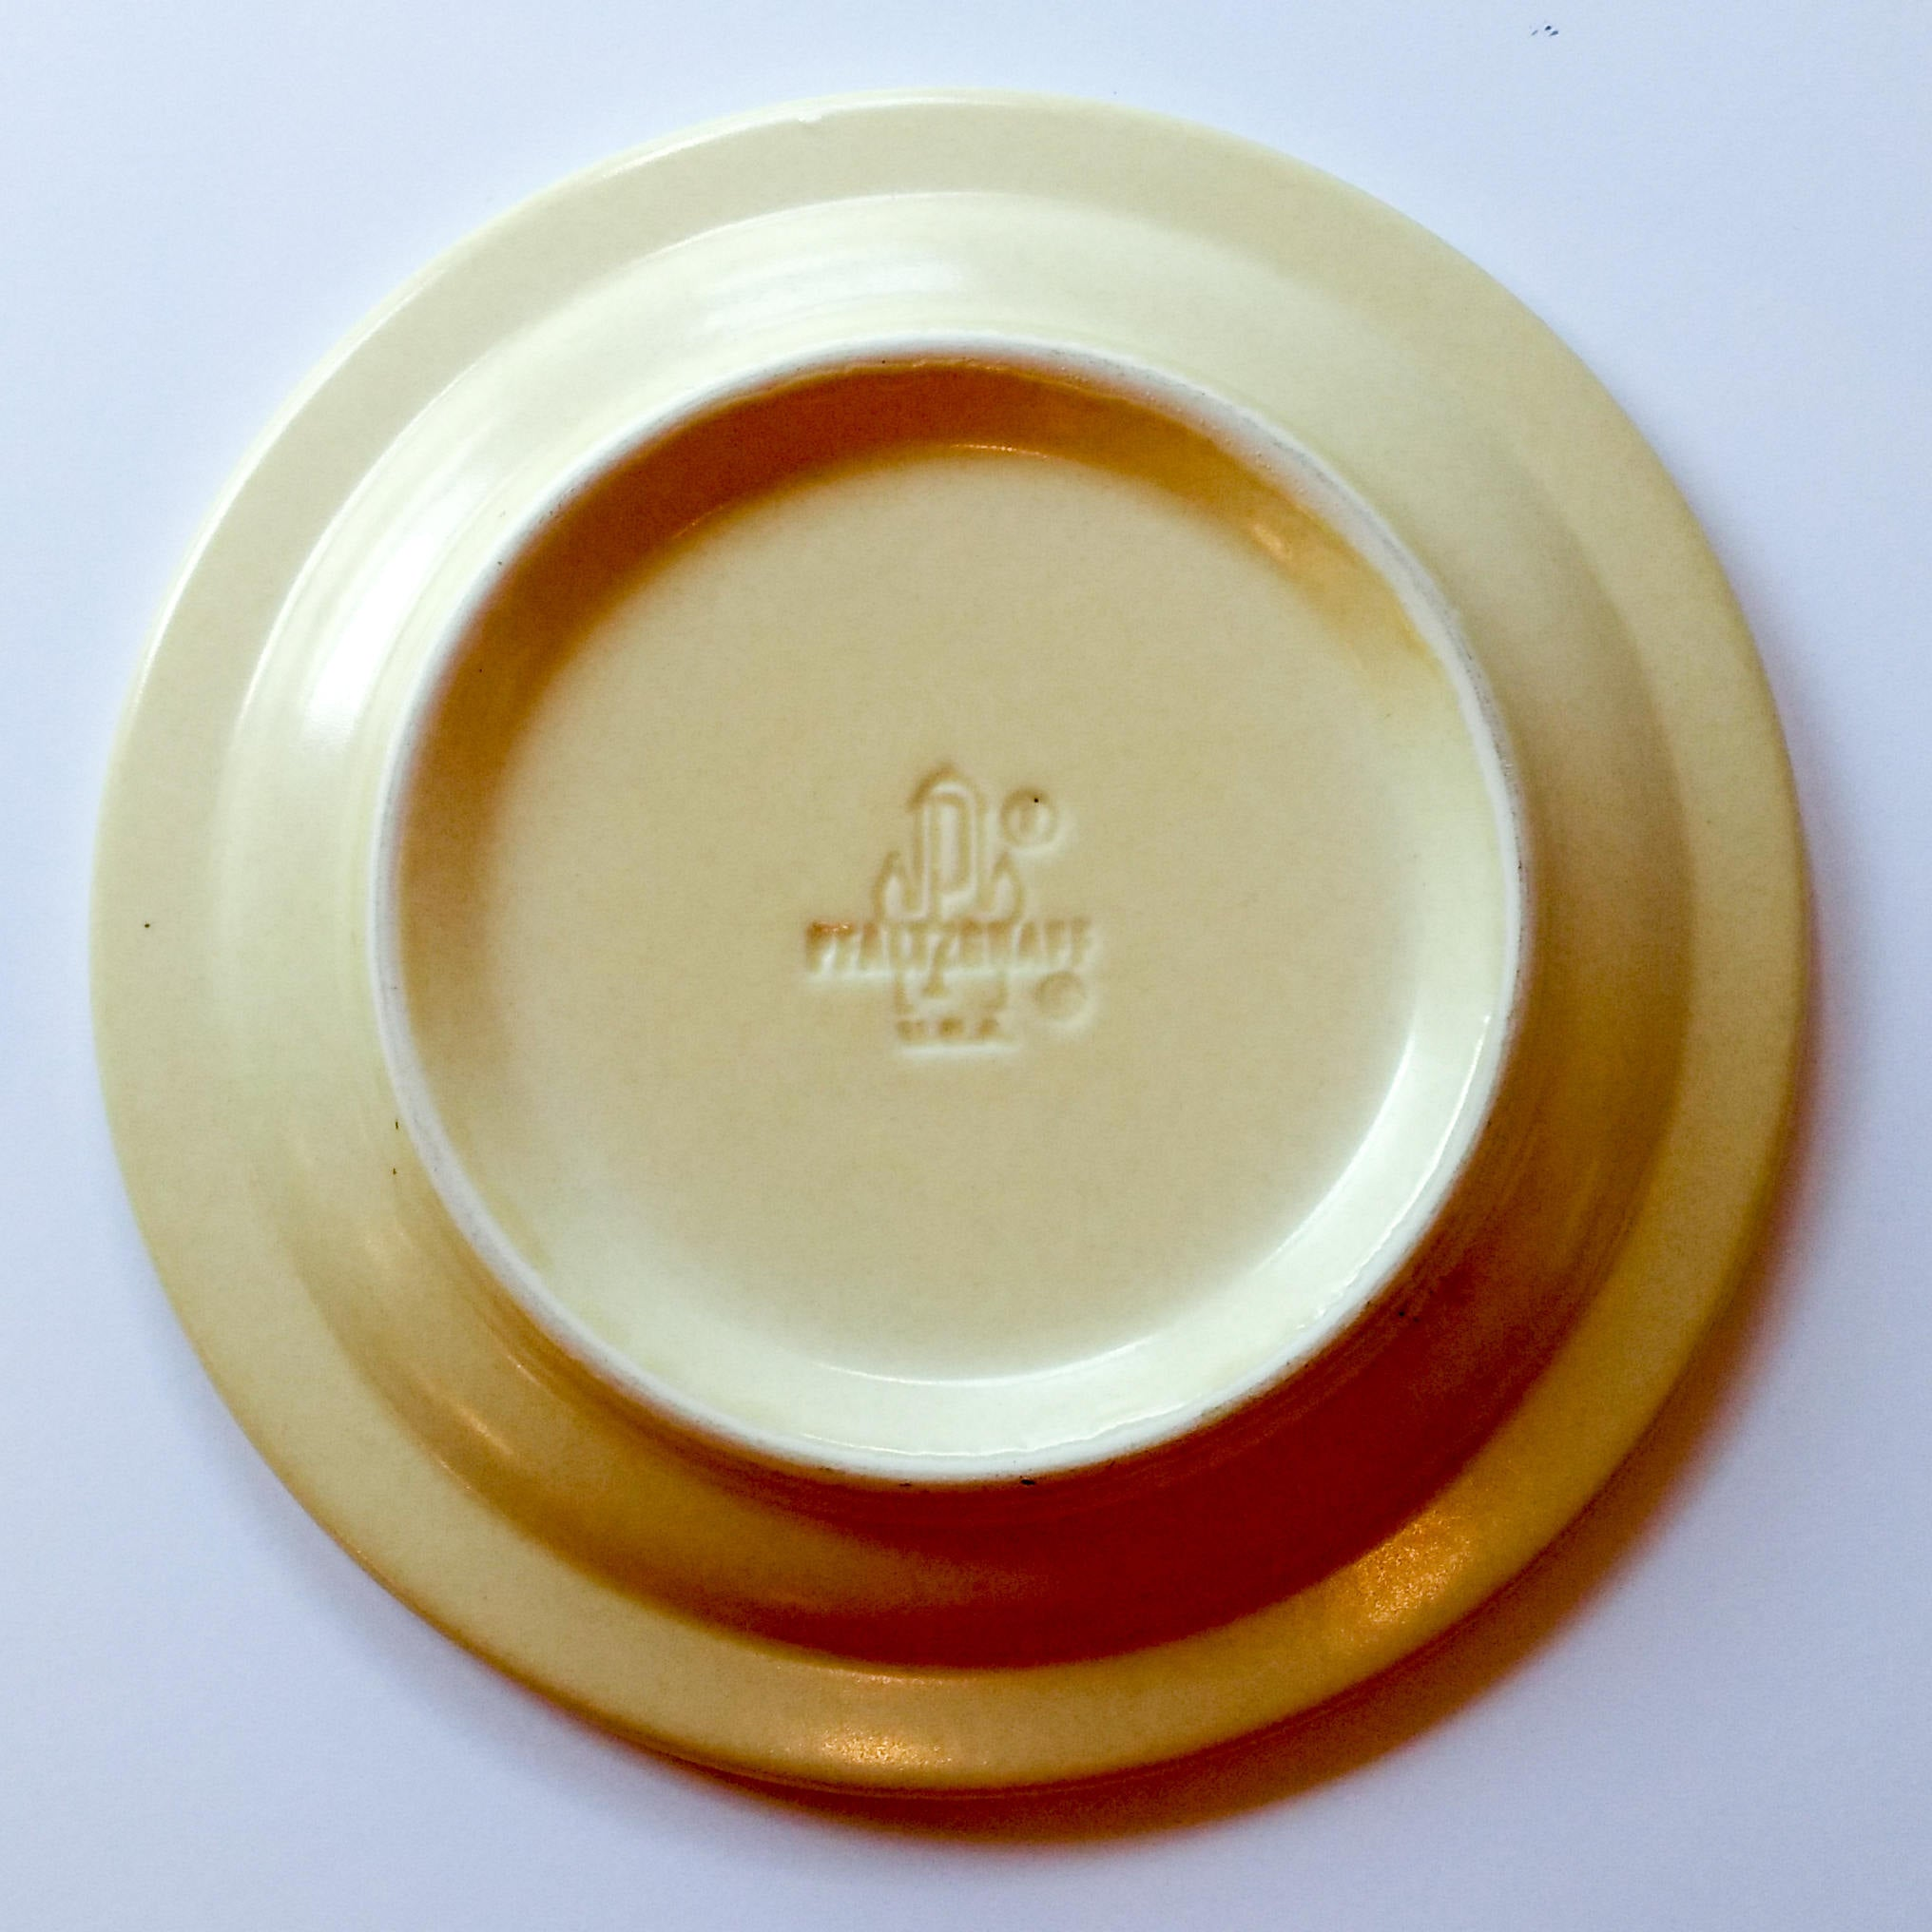 Vintage Salad Plate with Decal in Village (Made in USA) by Pfaltzgraff